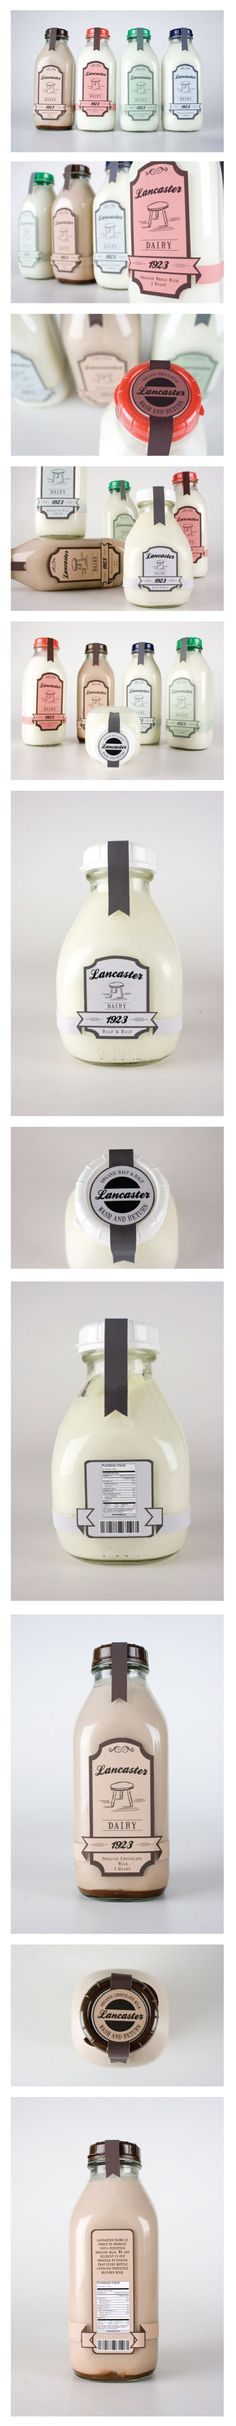 Lancaster Dairy Milk Packaging By Danielle Hop